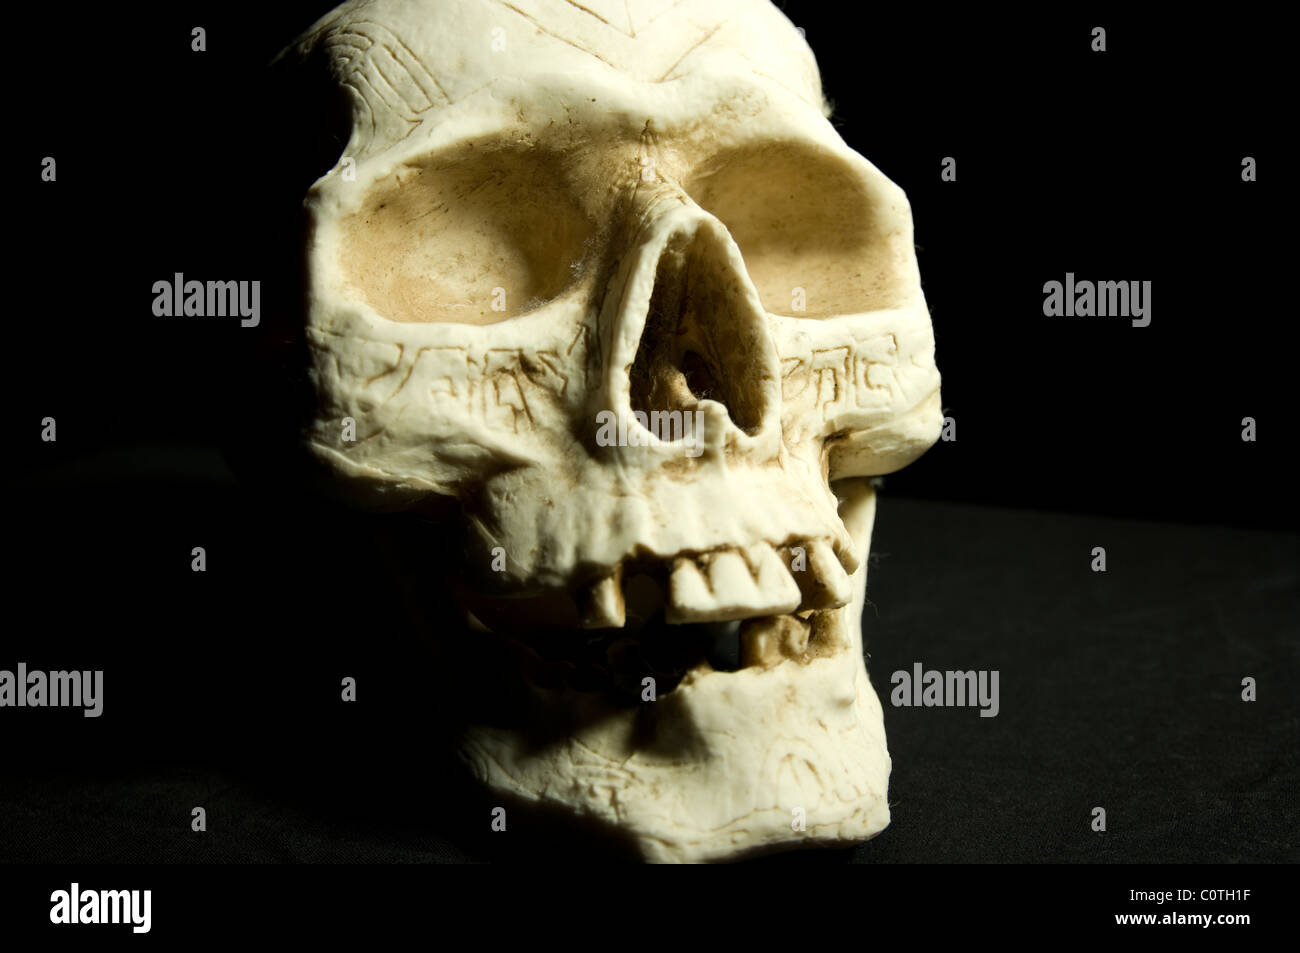 A ceramic skull with etchings on it. - Stock Image